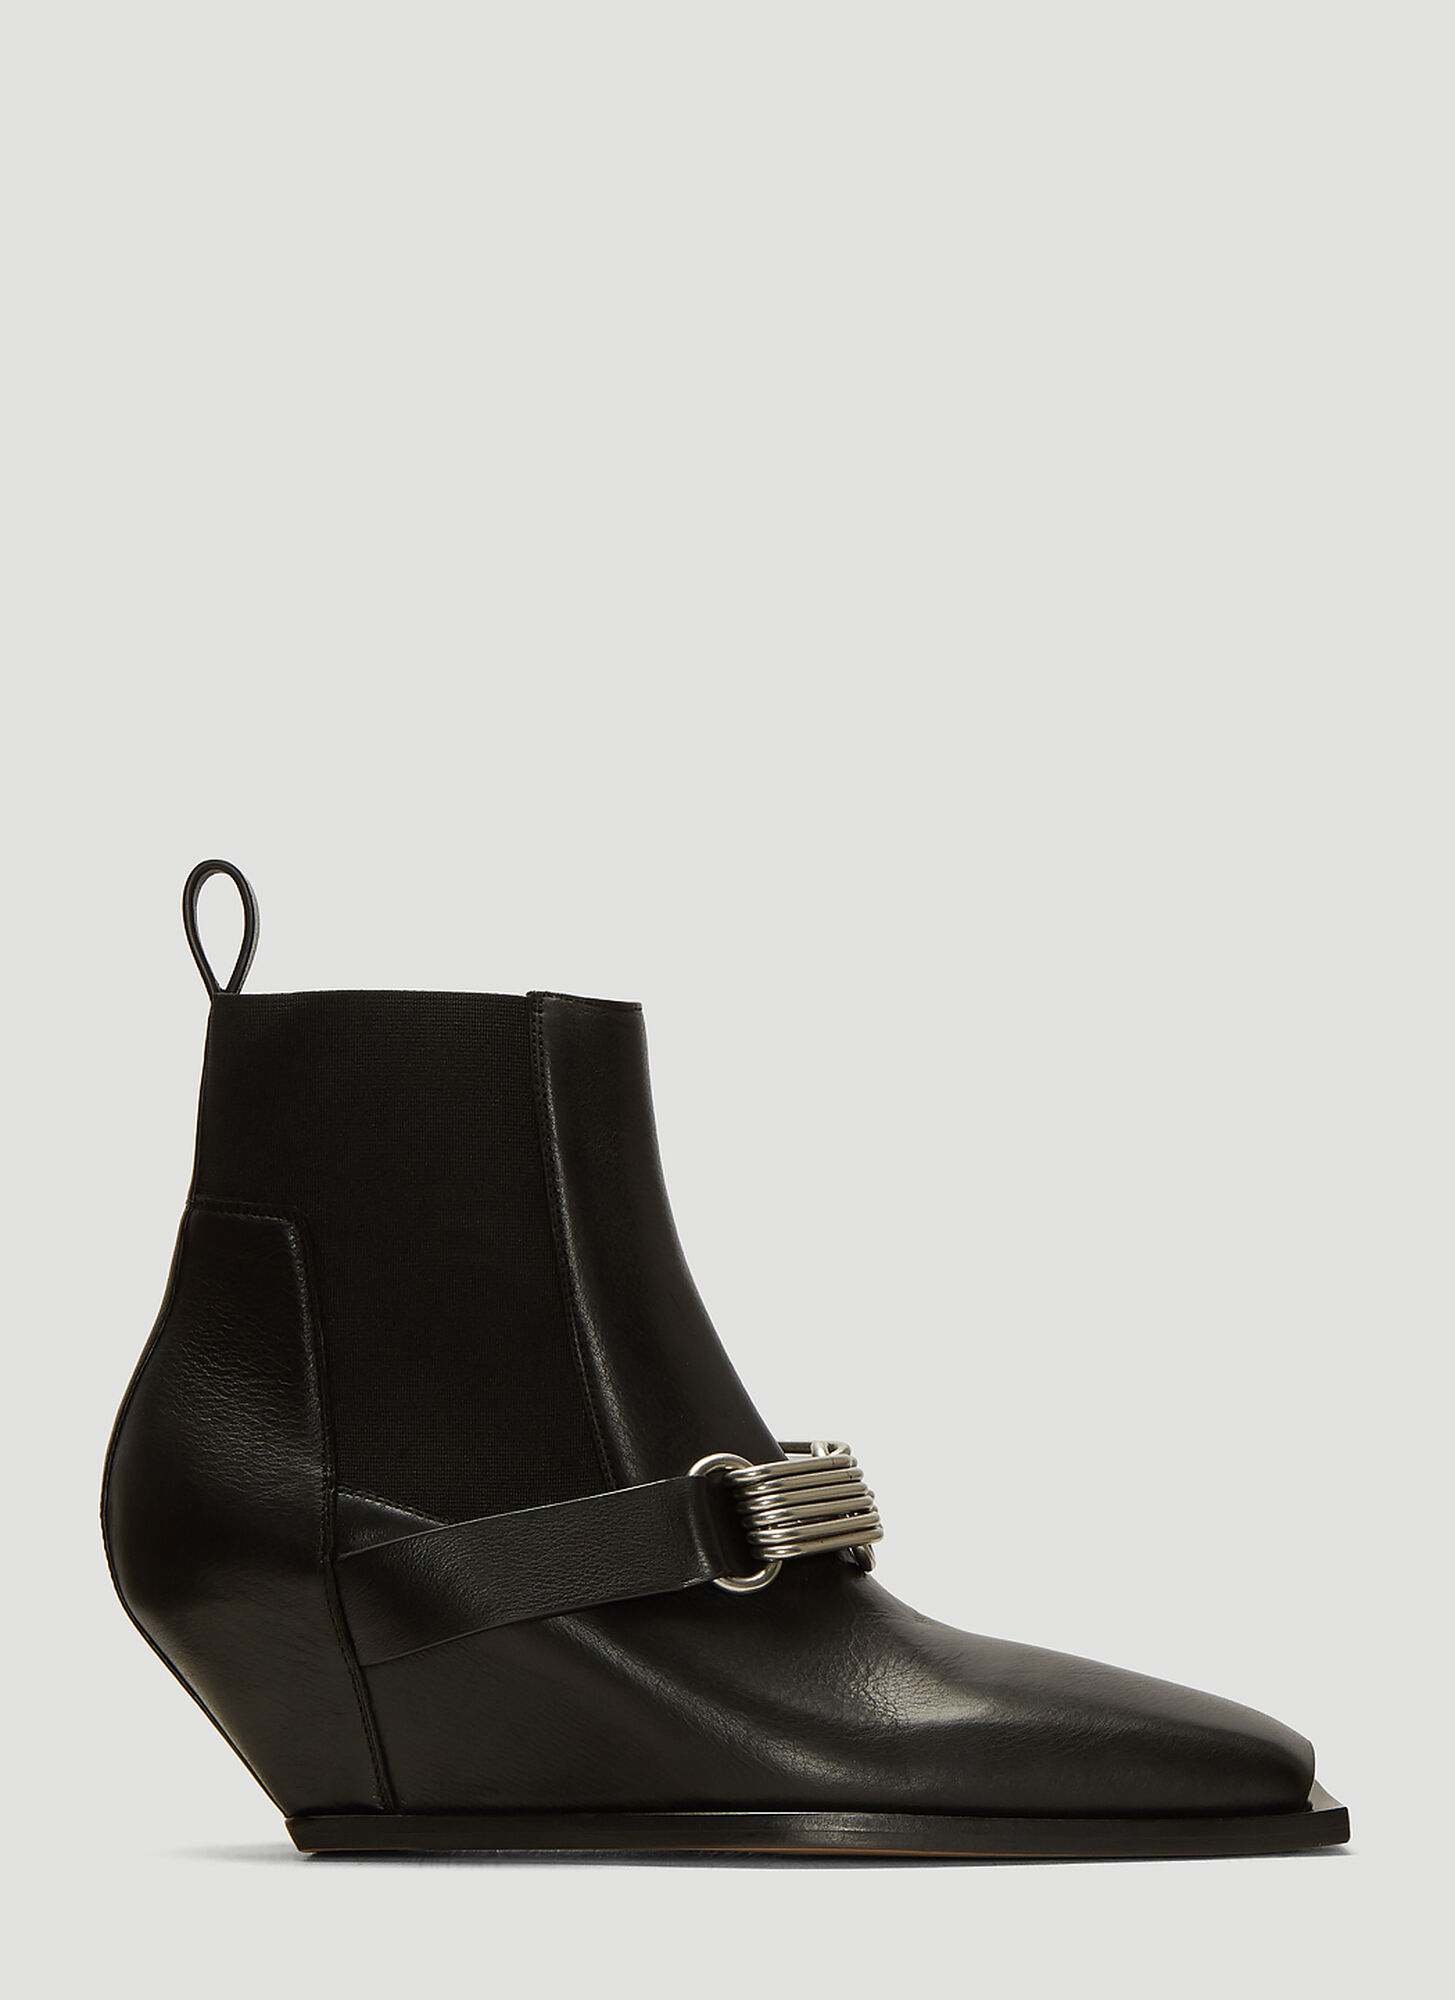 Rick Owens Stivali Ankle Boots in Black